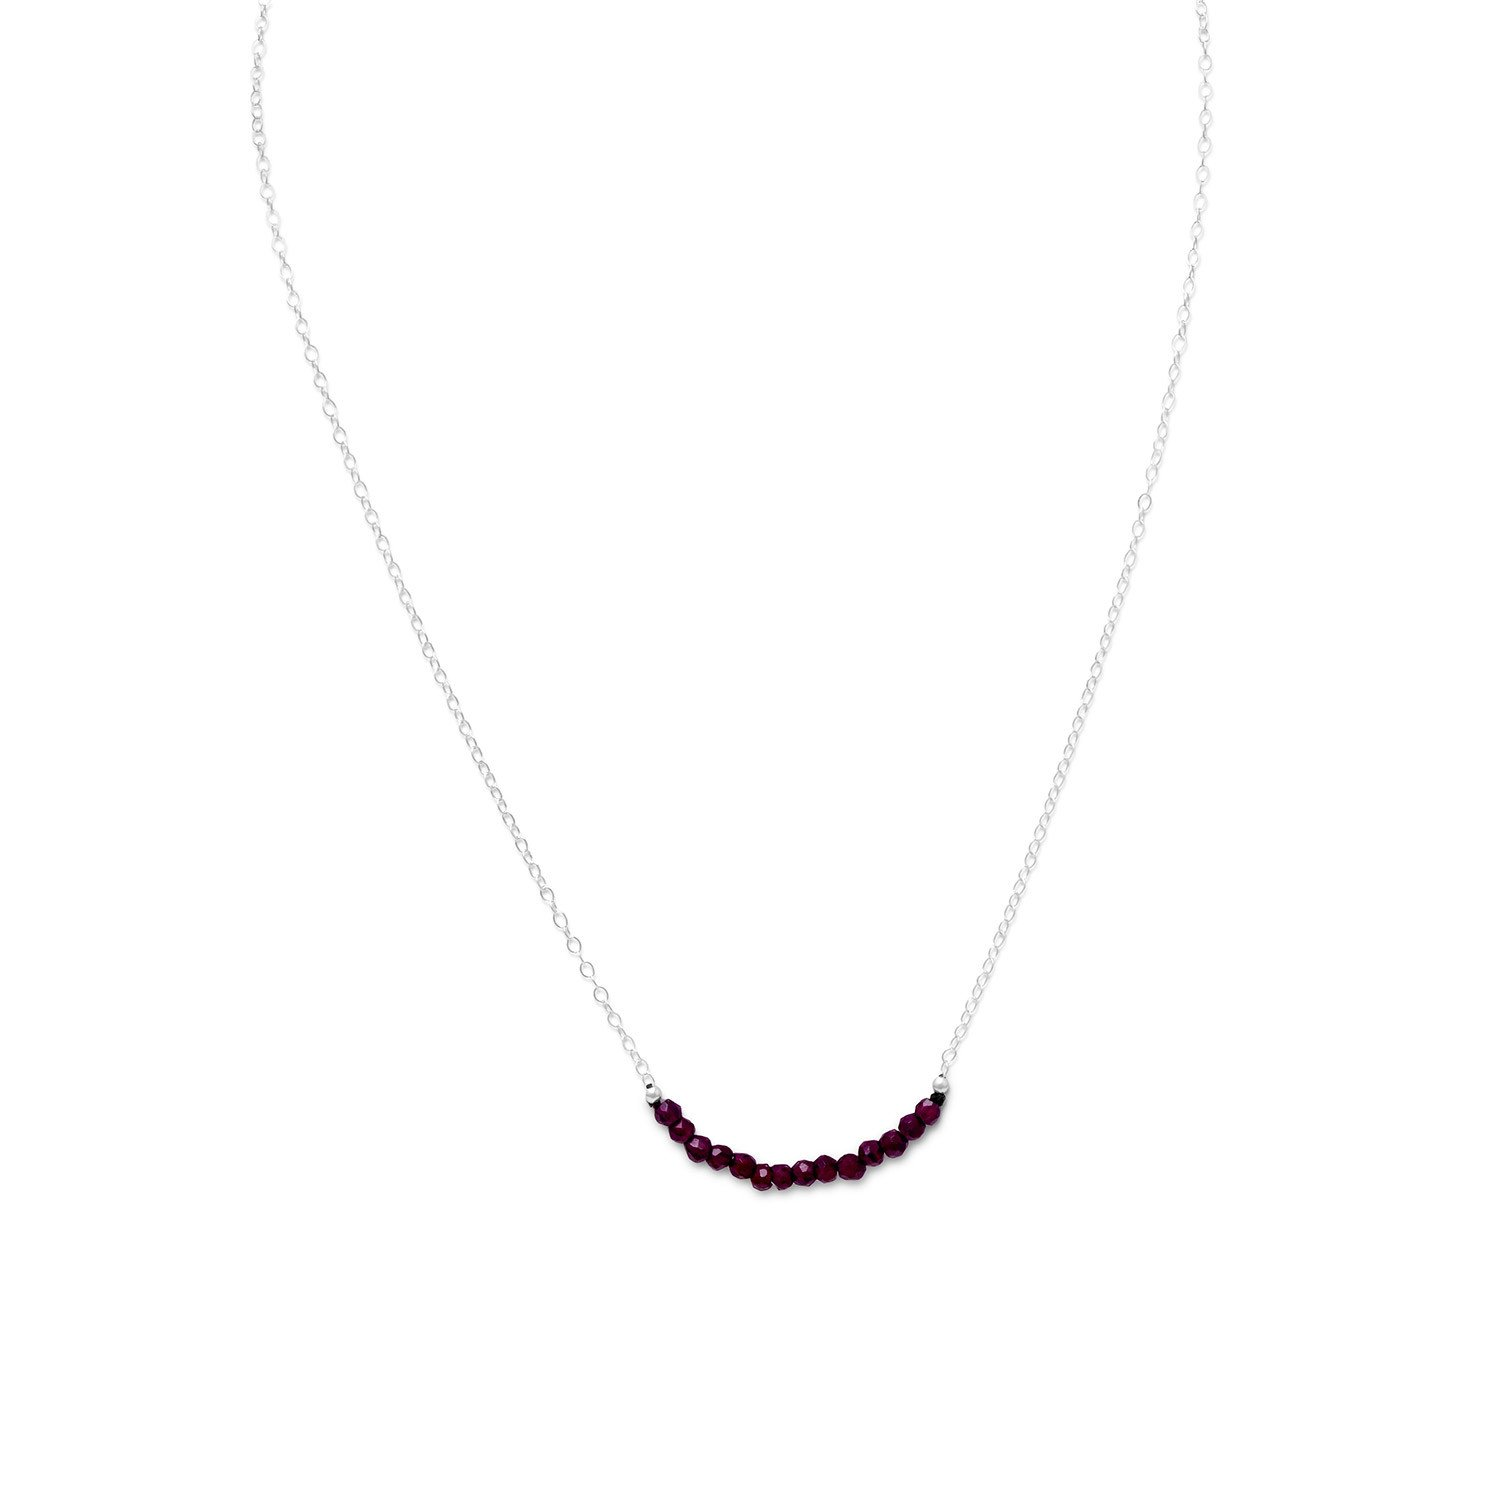 Faceted Garnet Bead Necklace – January Birthstone